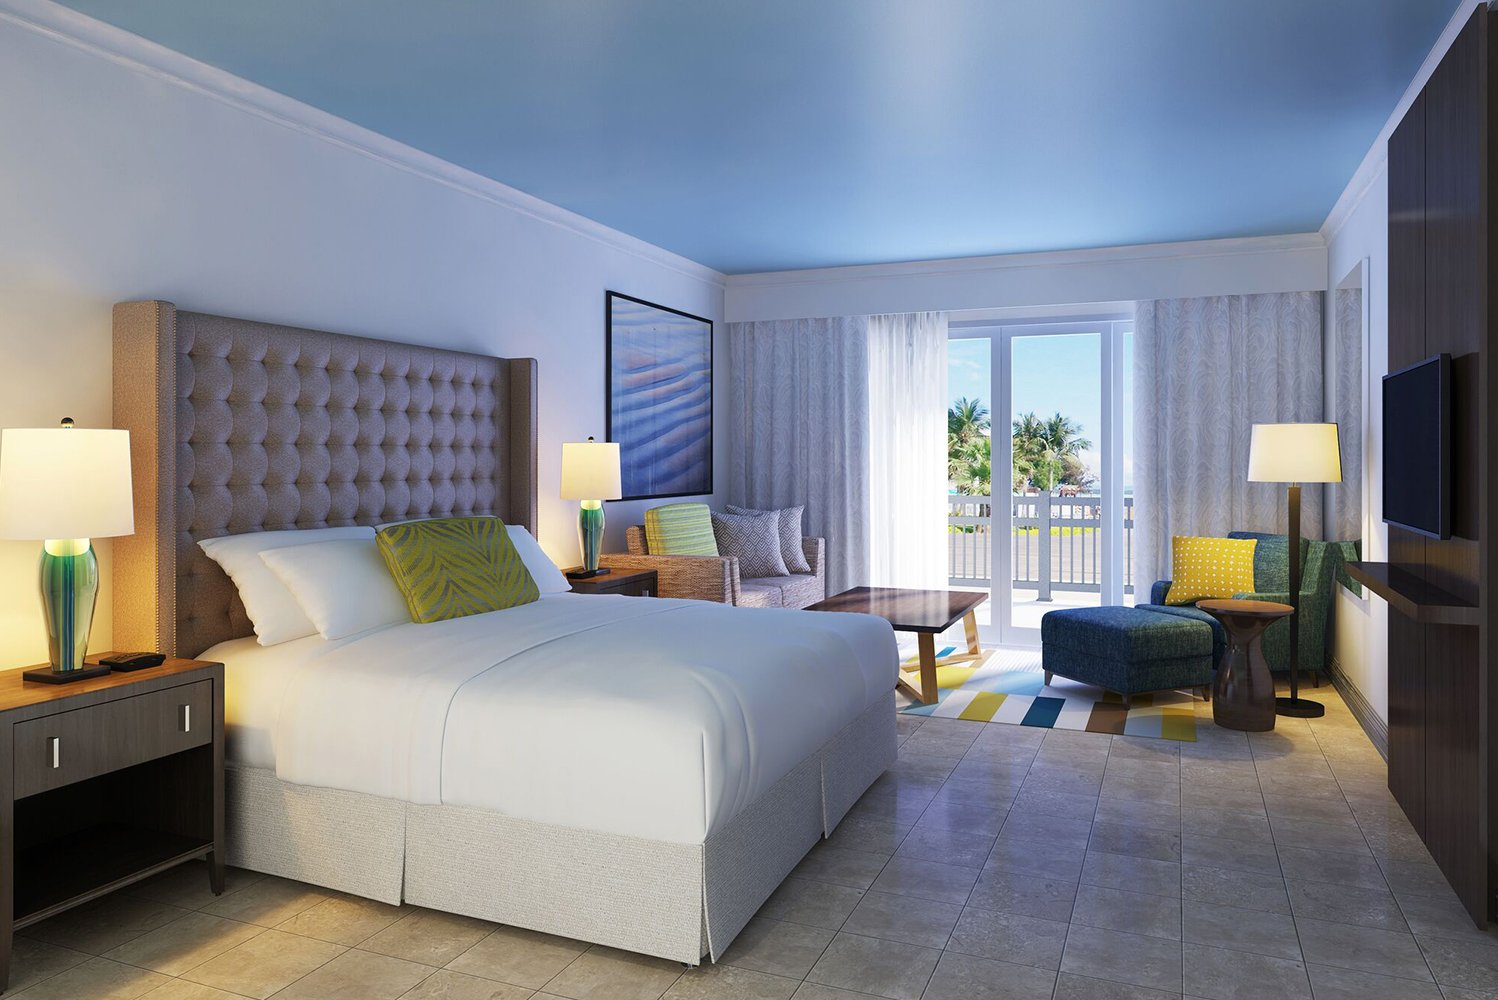 St. Kitts Marriott Resort completed its renovations that saw the property transform all 389 rooms and the main lobby.